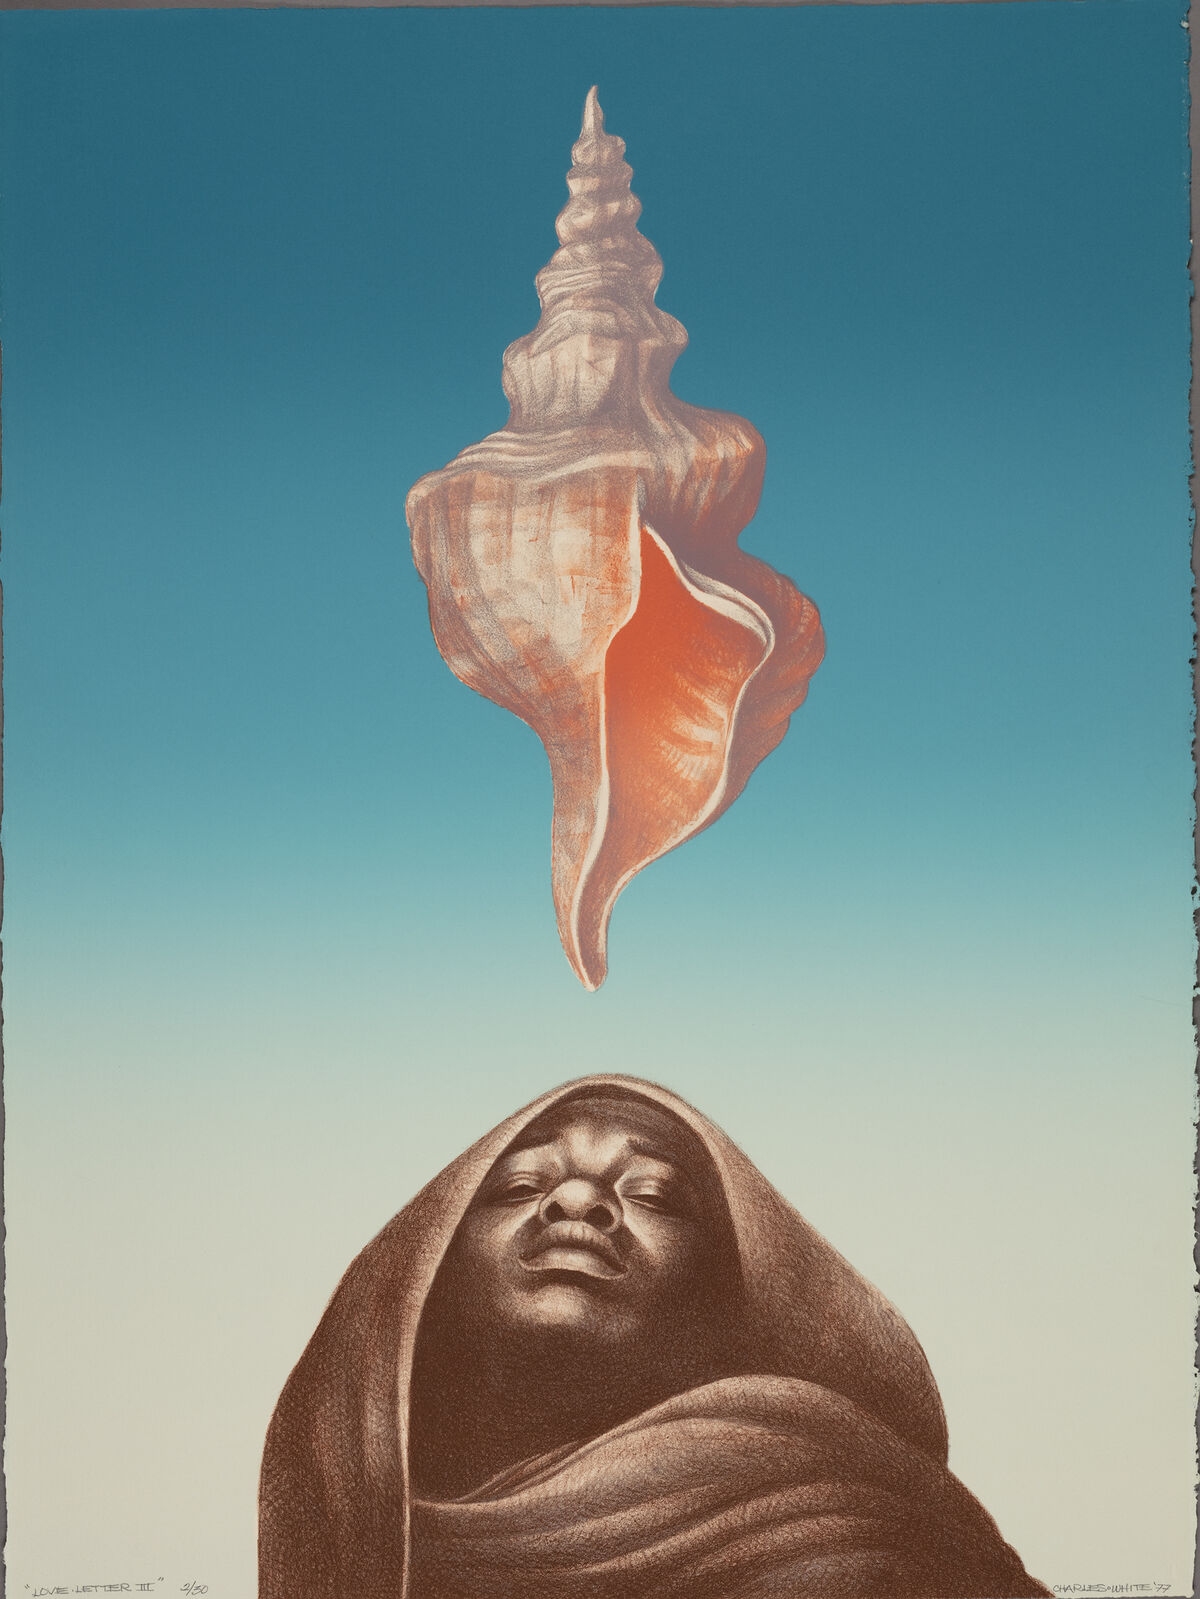 Charles White, Love Letter III, 1977. © The Charles White Archives/ The Art Institute of Chicago. Courtesy of The Museum of the Modern Art.